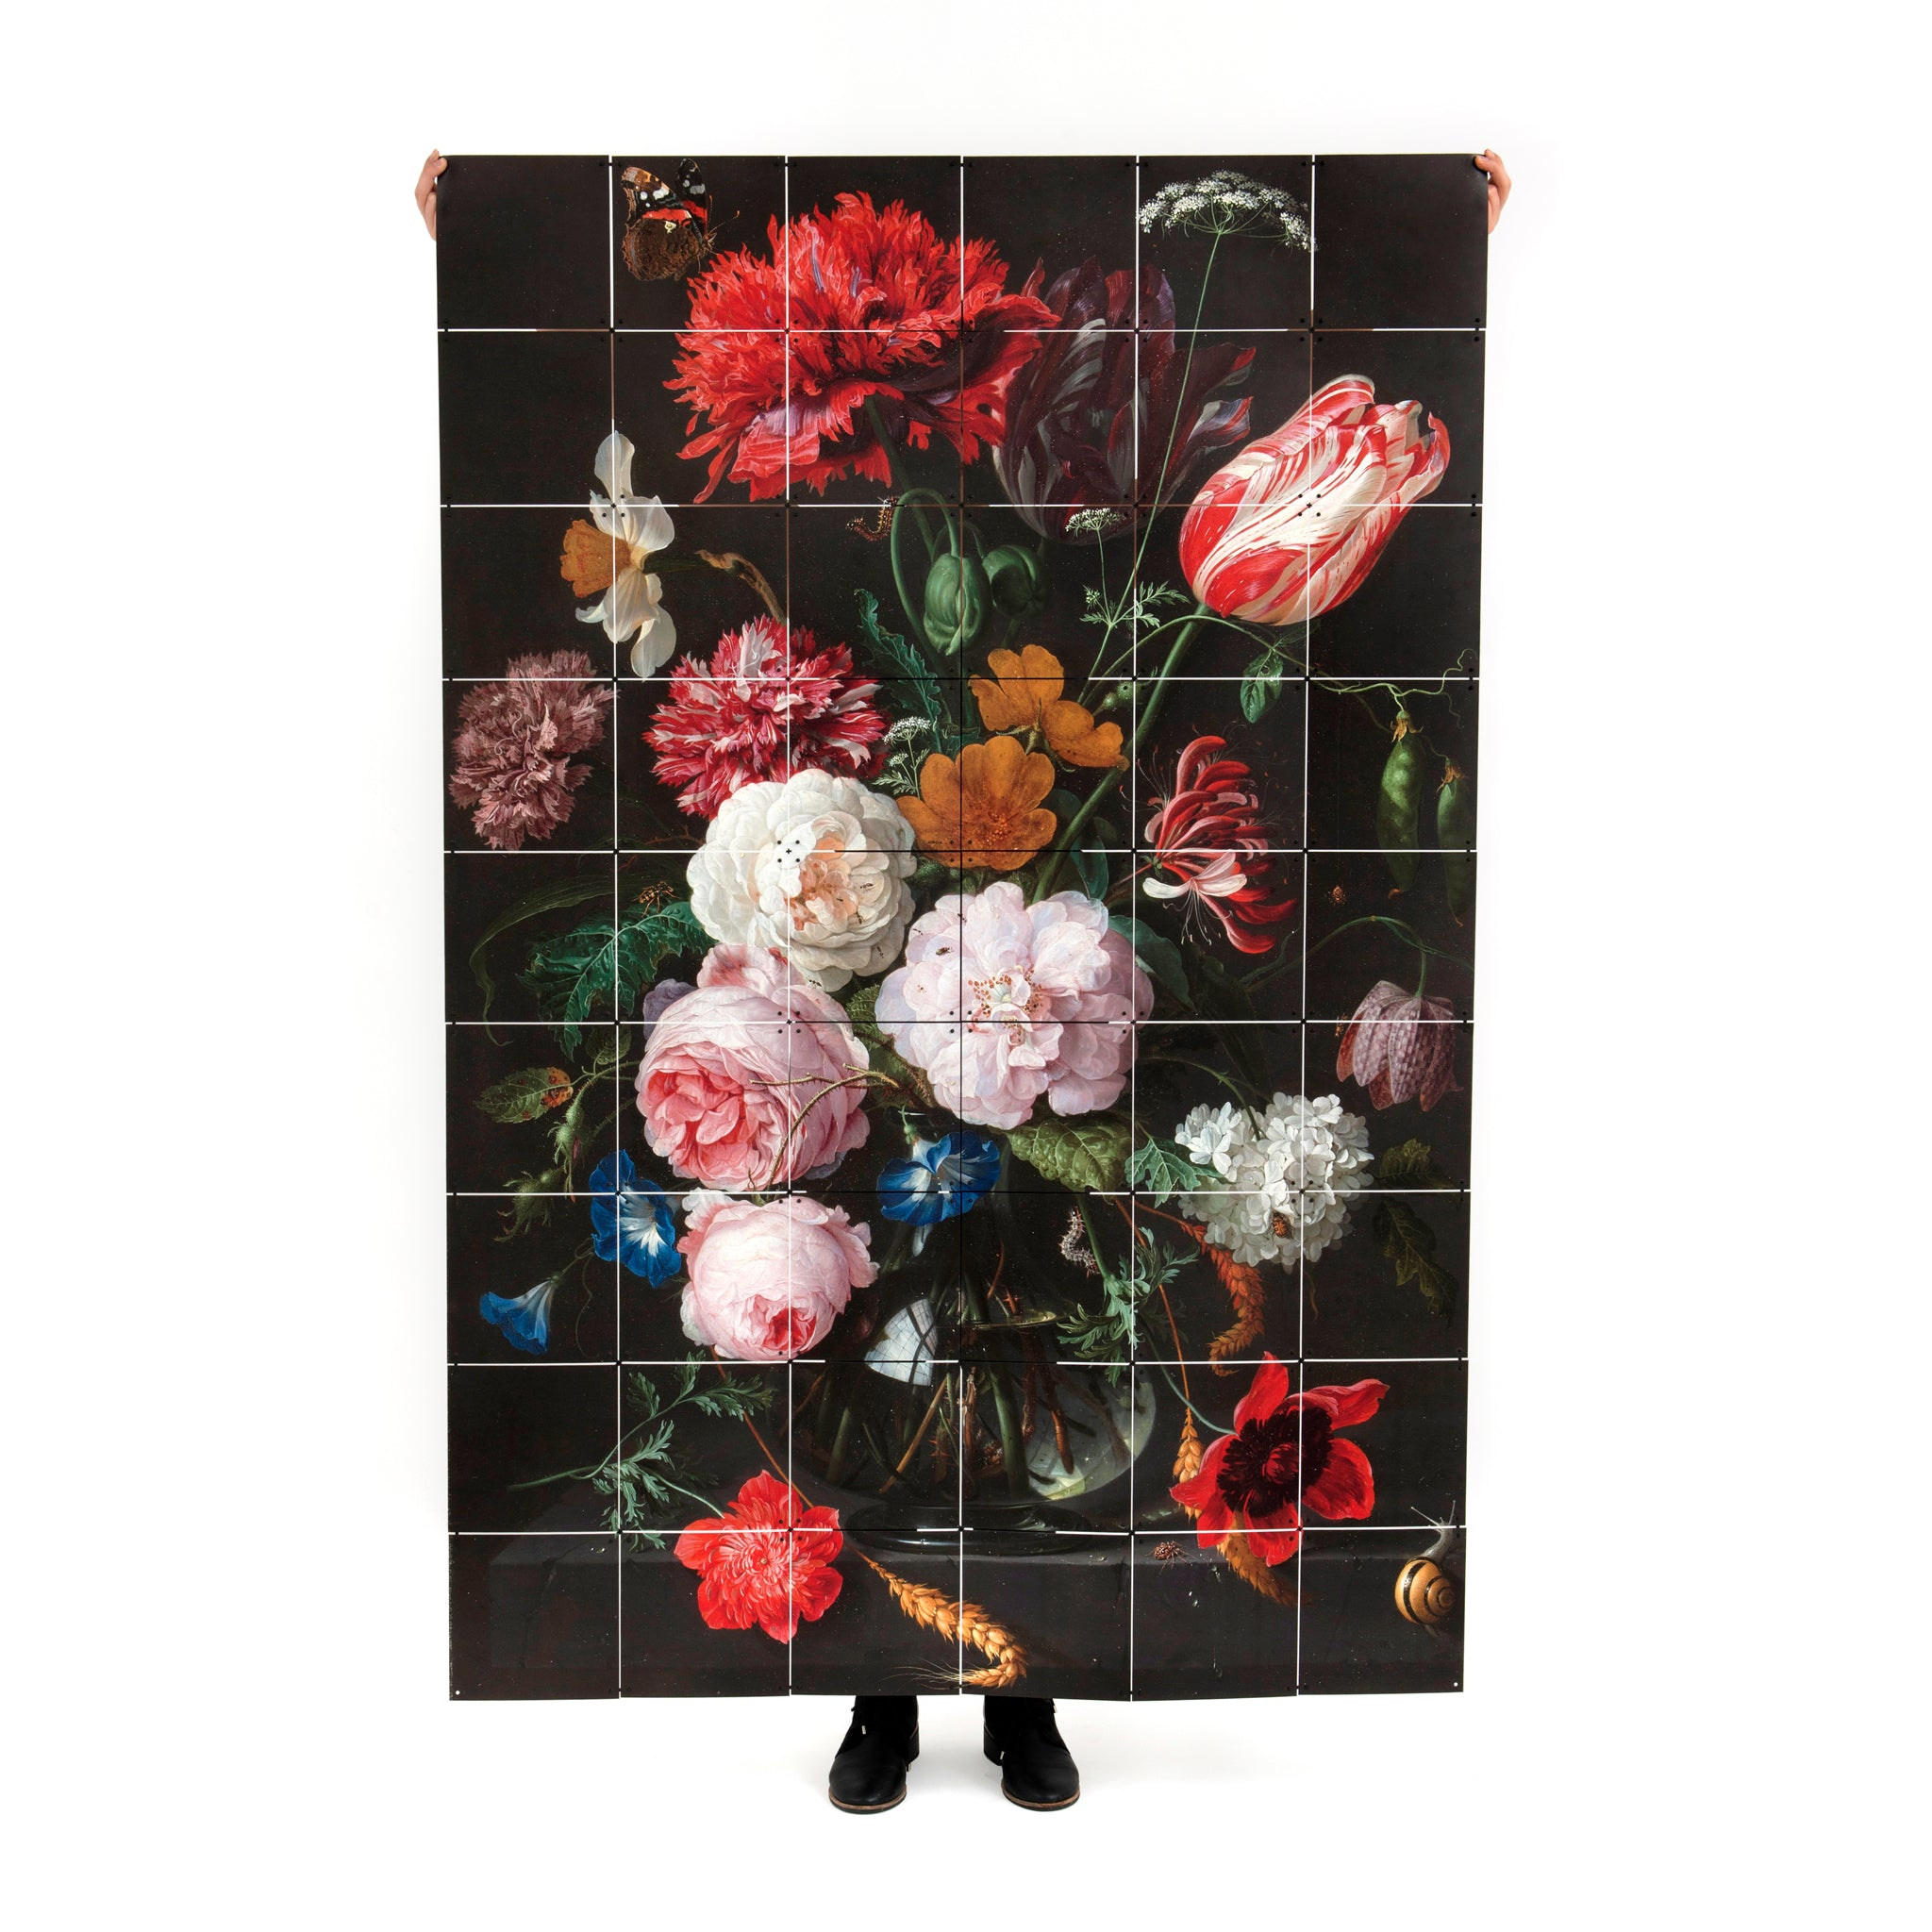 Still Life with Flowers Wall Hanging Image